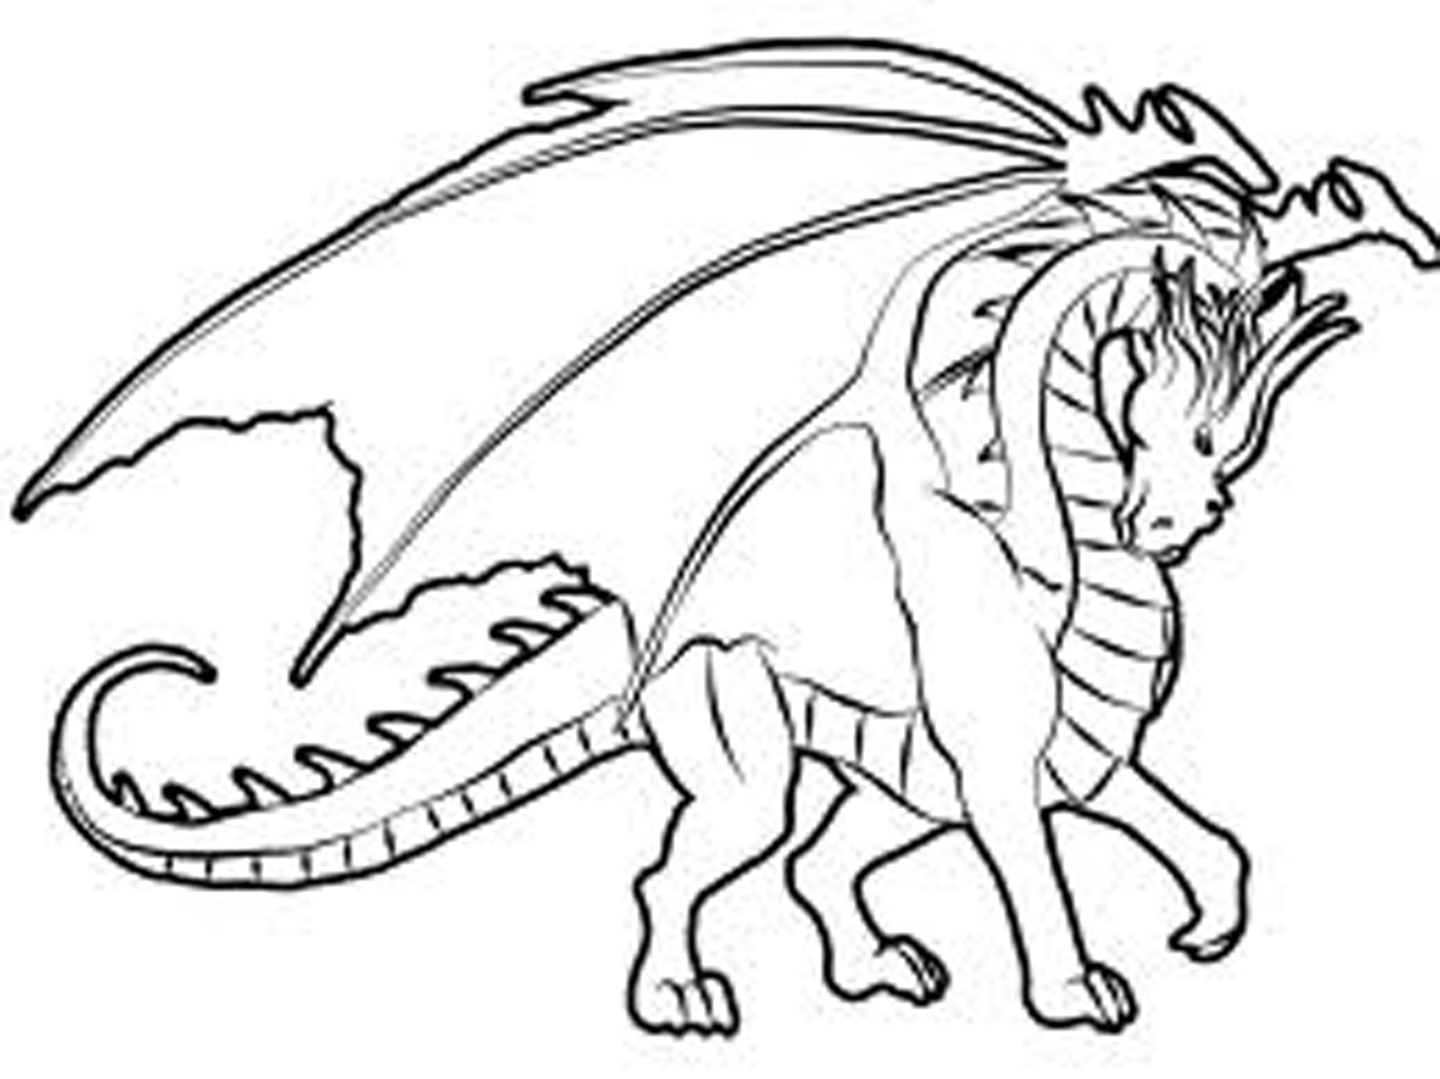 Animals coloring pages for kids printable - Animal Coloring Pages For Kids Printable Pictures Free Free Animal Coloring Pages Kids